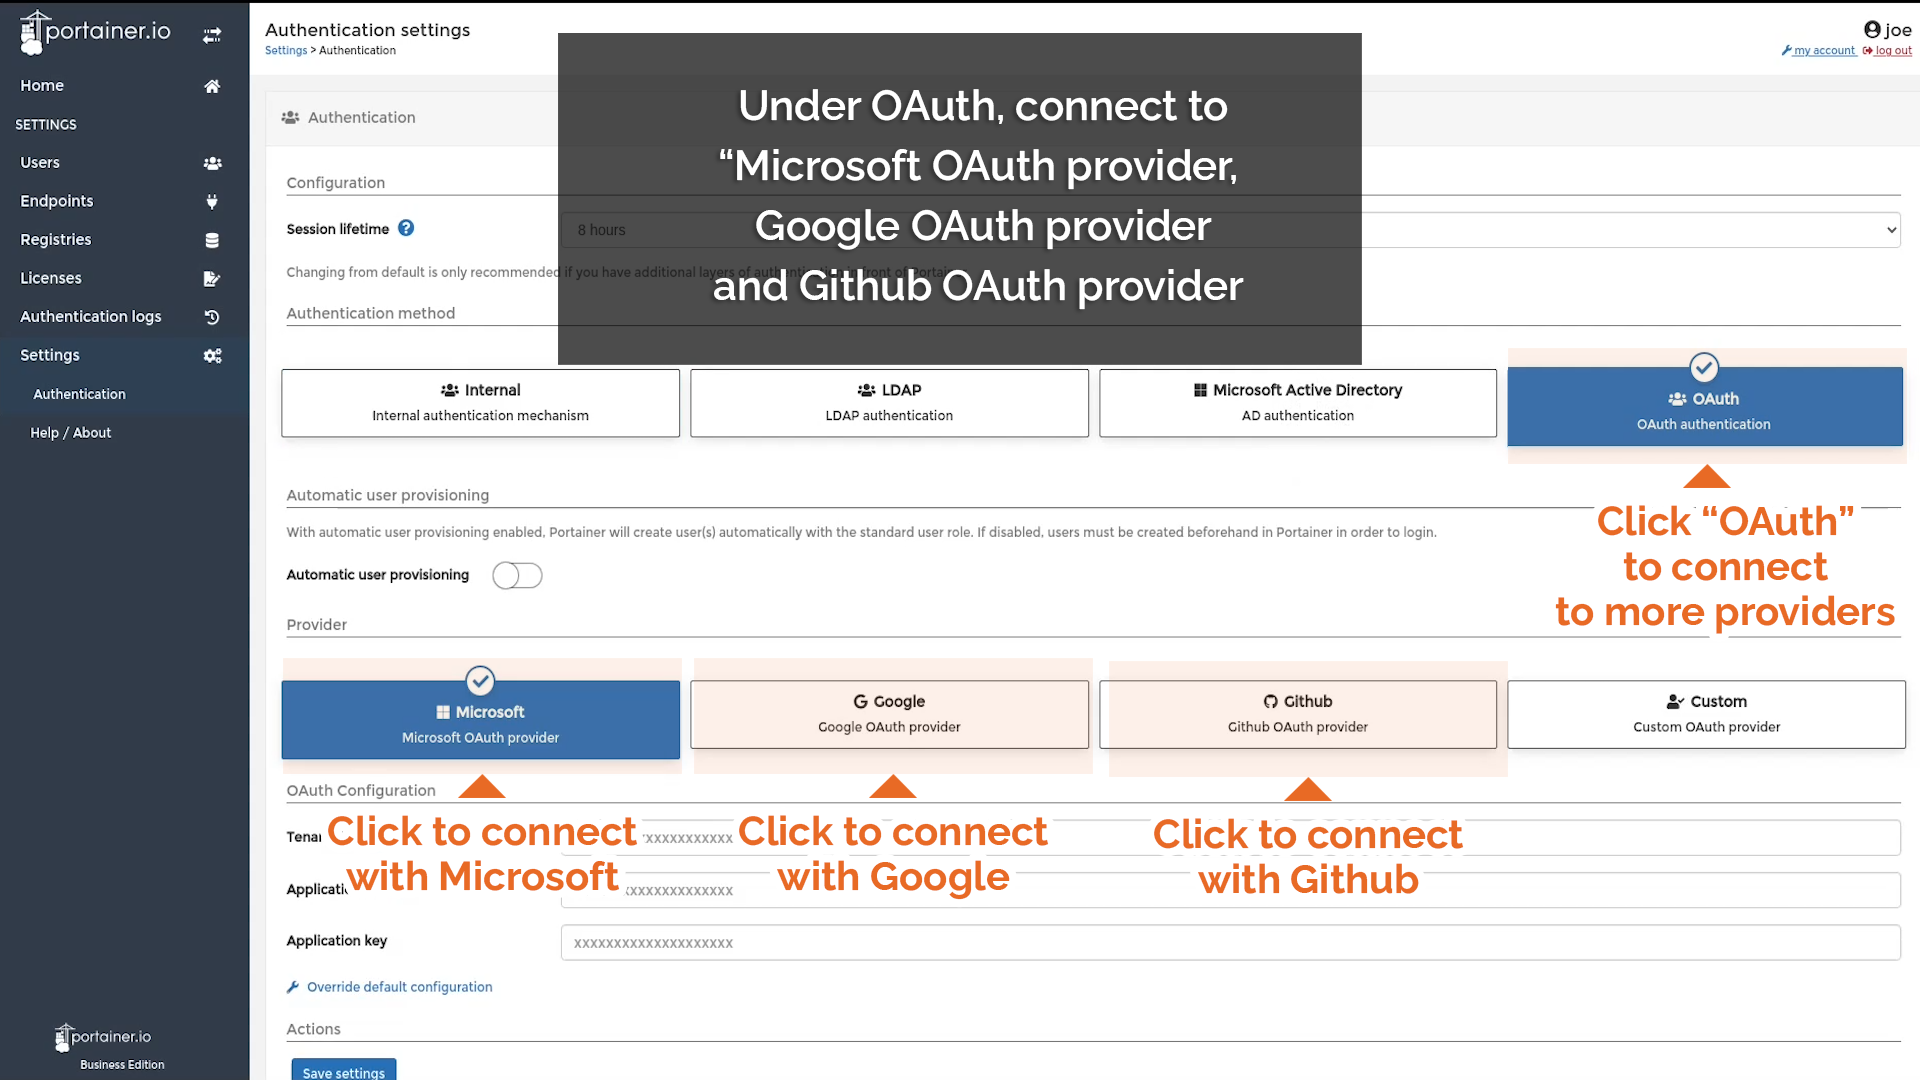 Or, use OAuth to connect to other providers